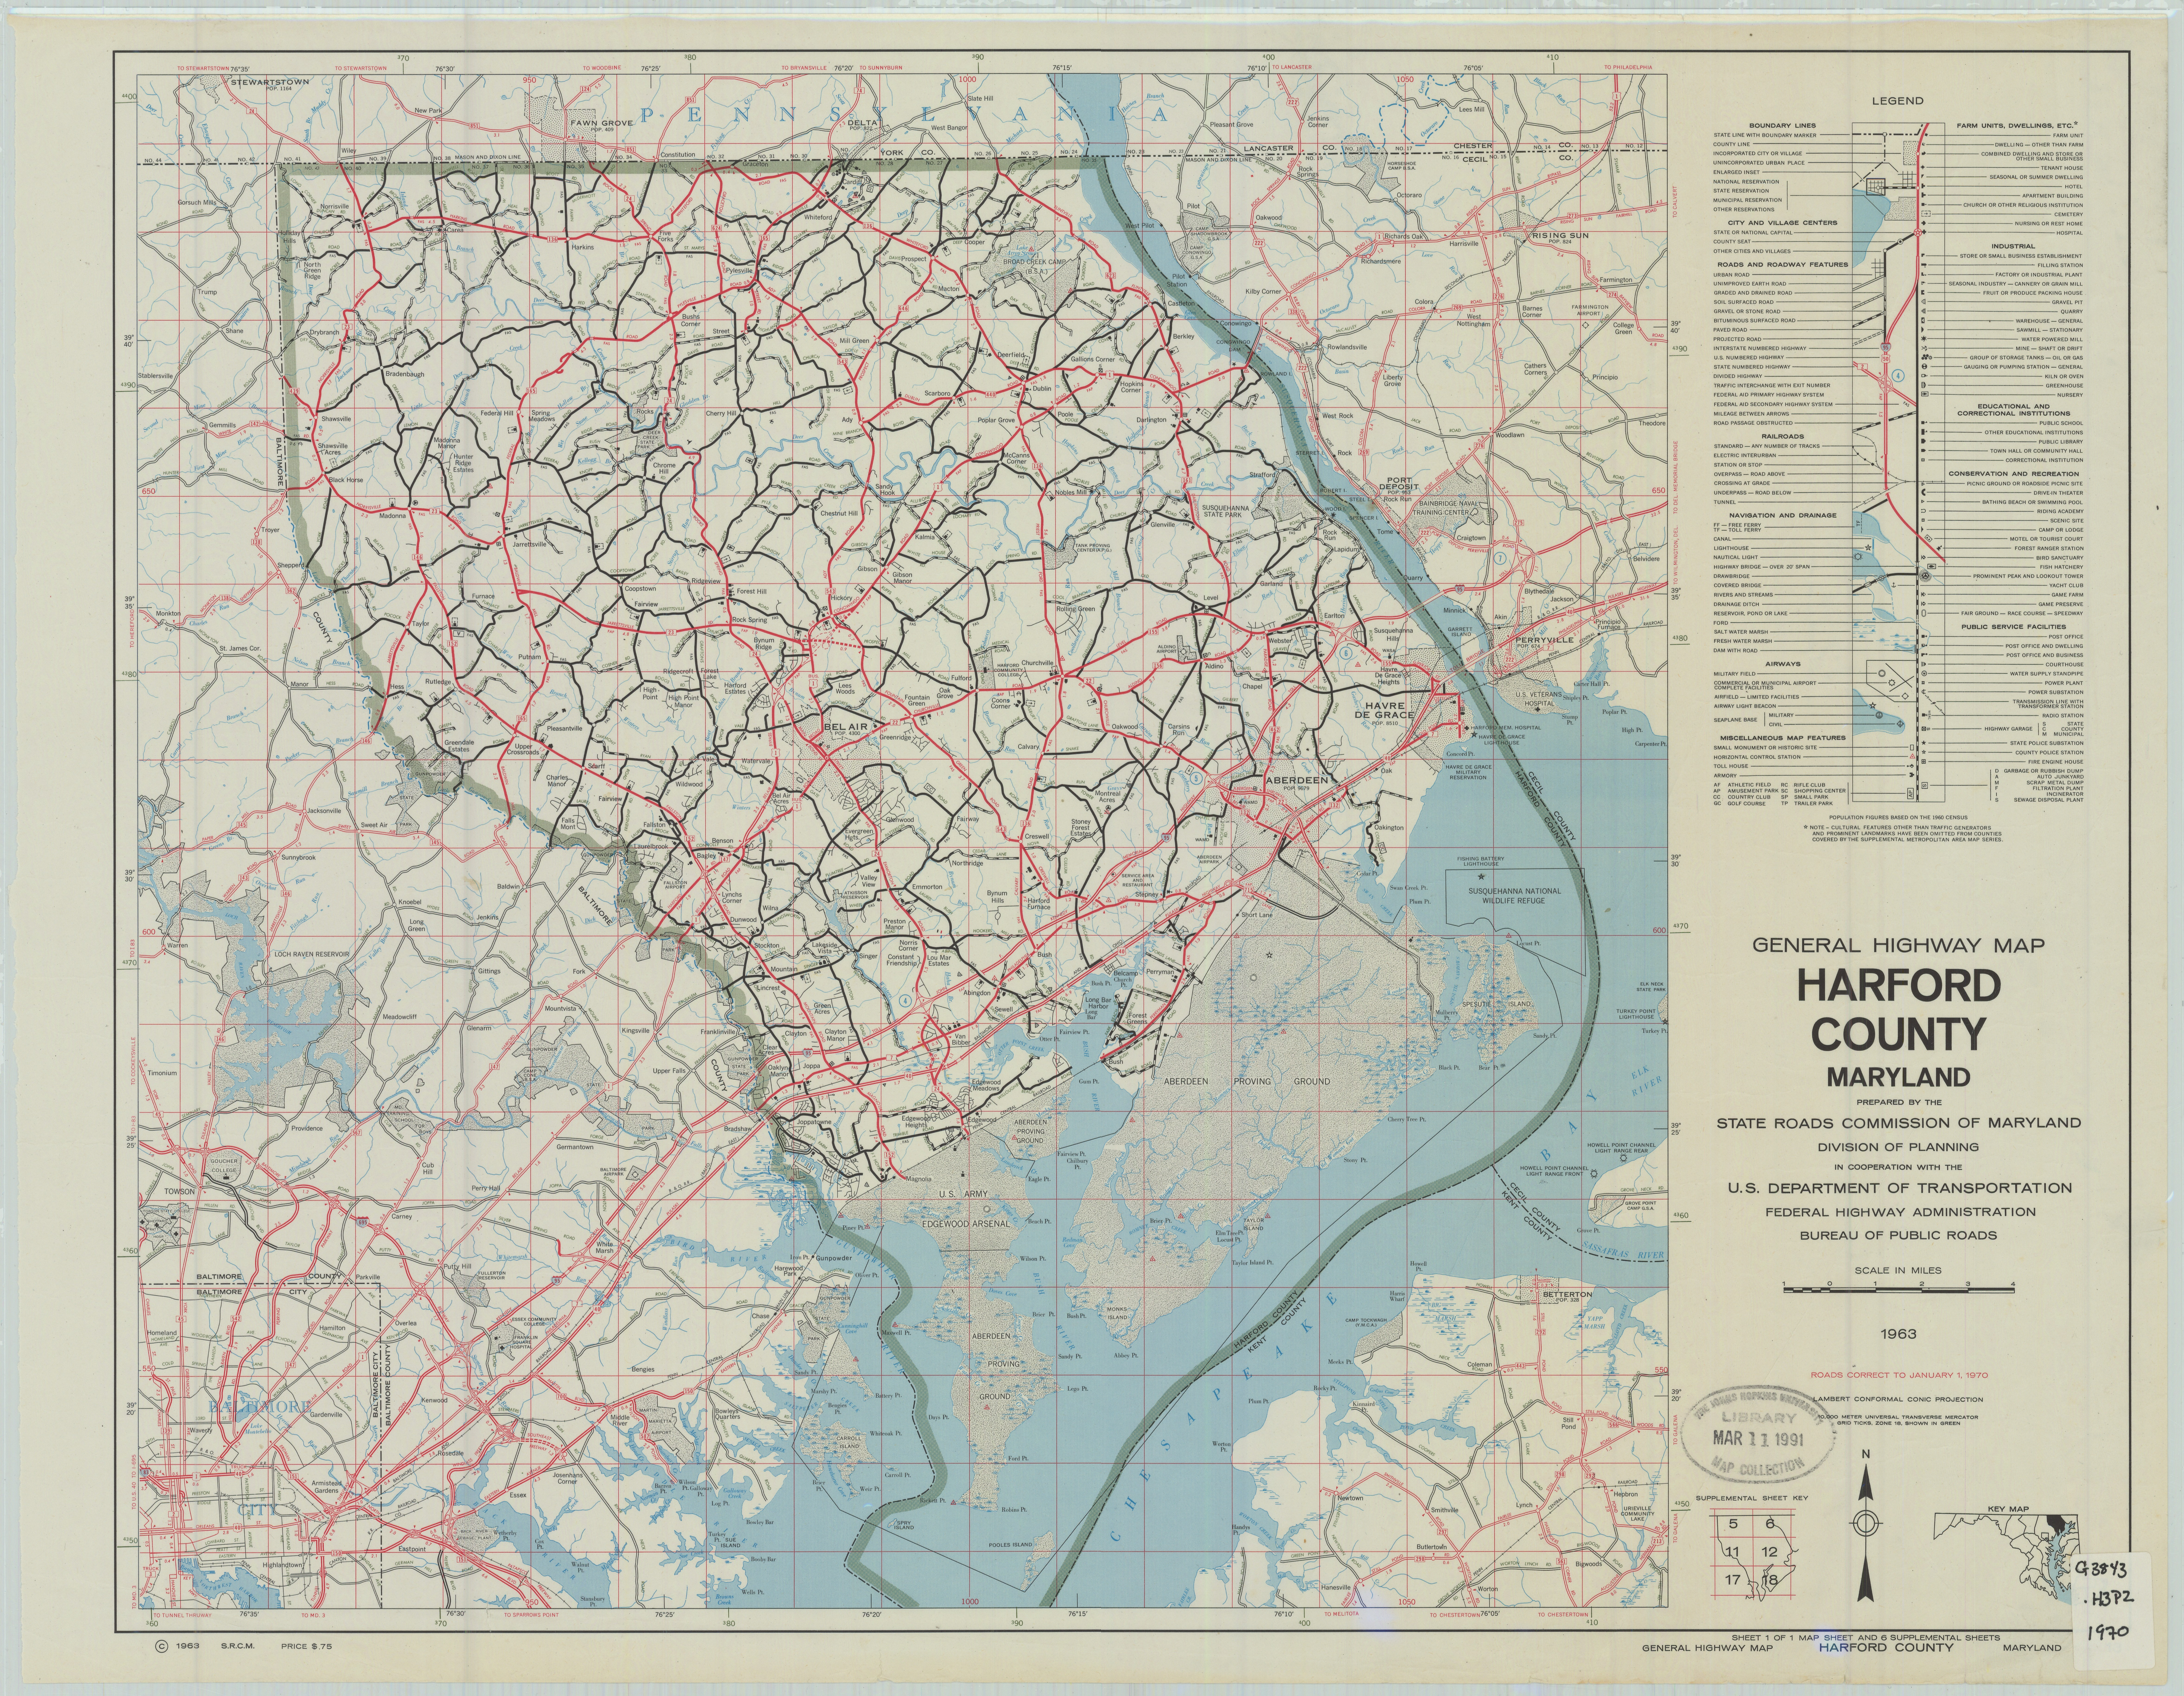 General Highway Map Harford County Maryland - Maryland road map